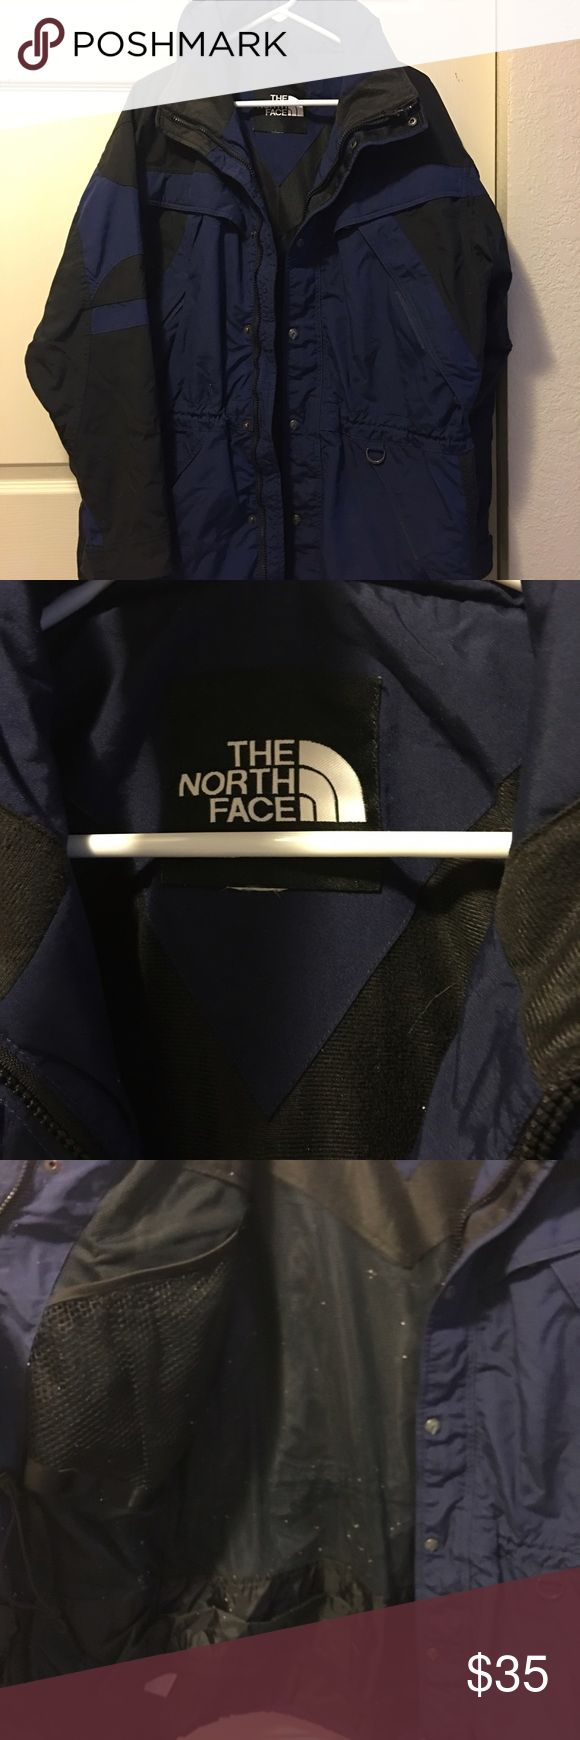 THE NORTH FACE WINTER JACKET SZ XL Tag was remove due to itchyness sz xl The North Face Jackets & Coats Windbreakers